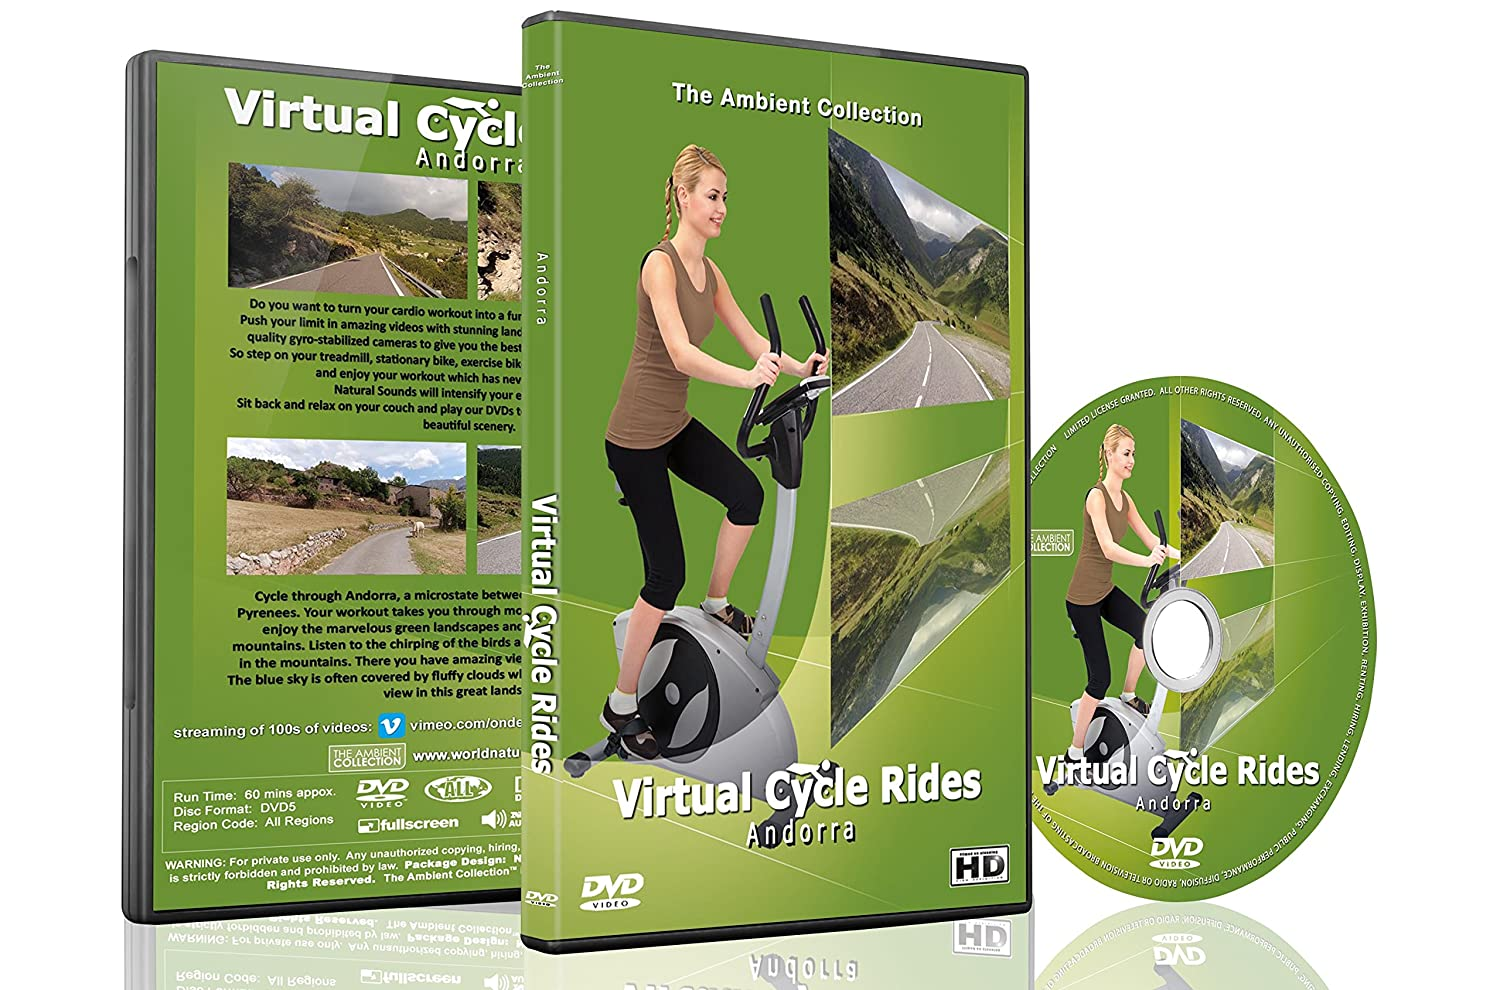 Amazon.com: Virtual Cycle Rides DVD - Andorra - for Indoor Cycling, Treadmill and Running Workouts: The Ambient Collection, Treadmill and Fitness Exercise ...